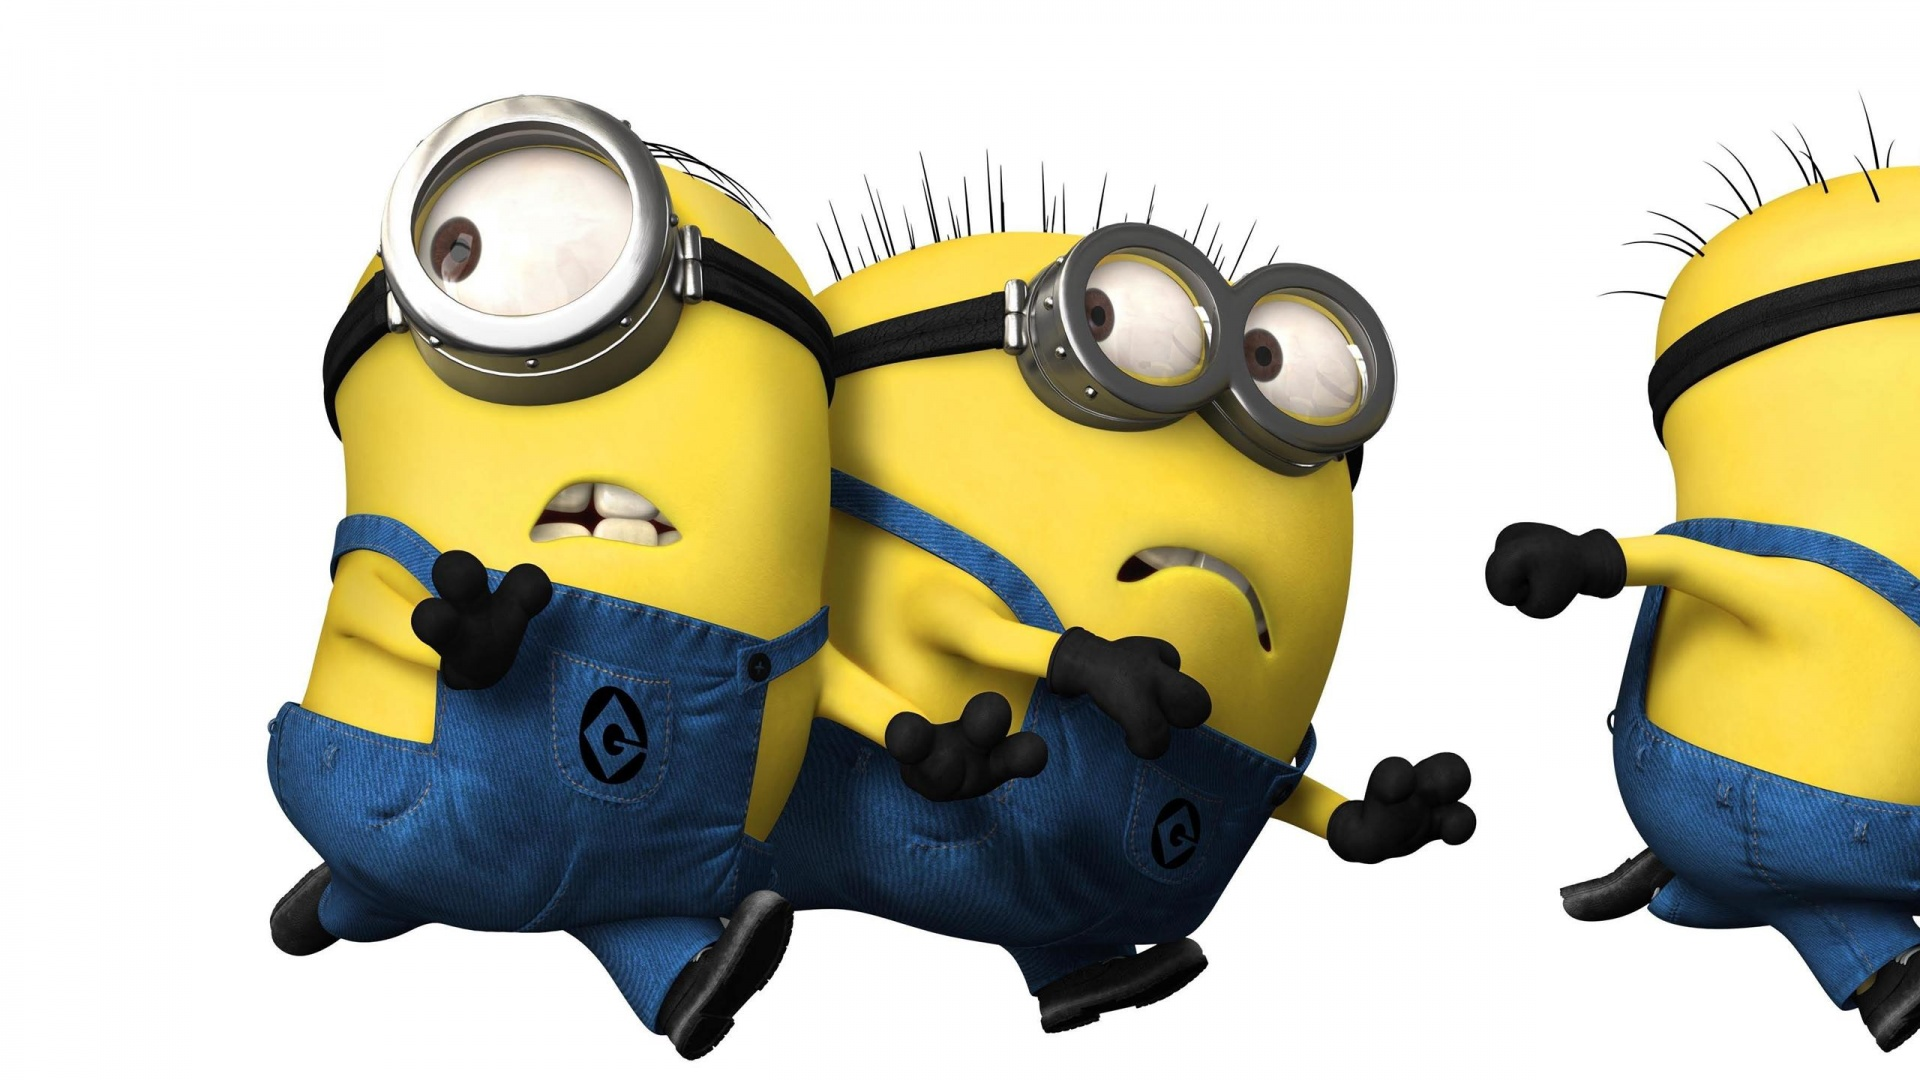 Despicable me wallpaper 29165 1920x1080 px hdwallsource despicable me wallpaper 29165 voltagebd Image collections